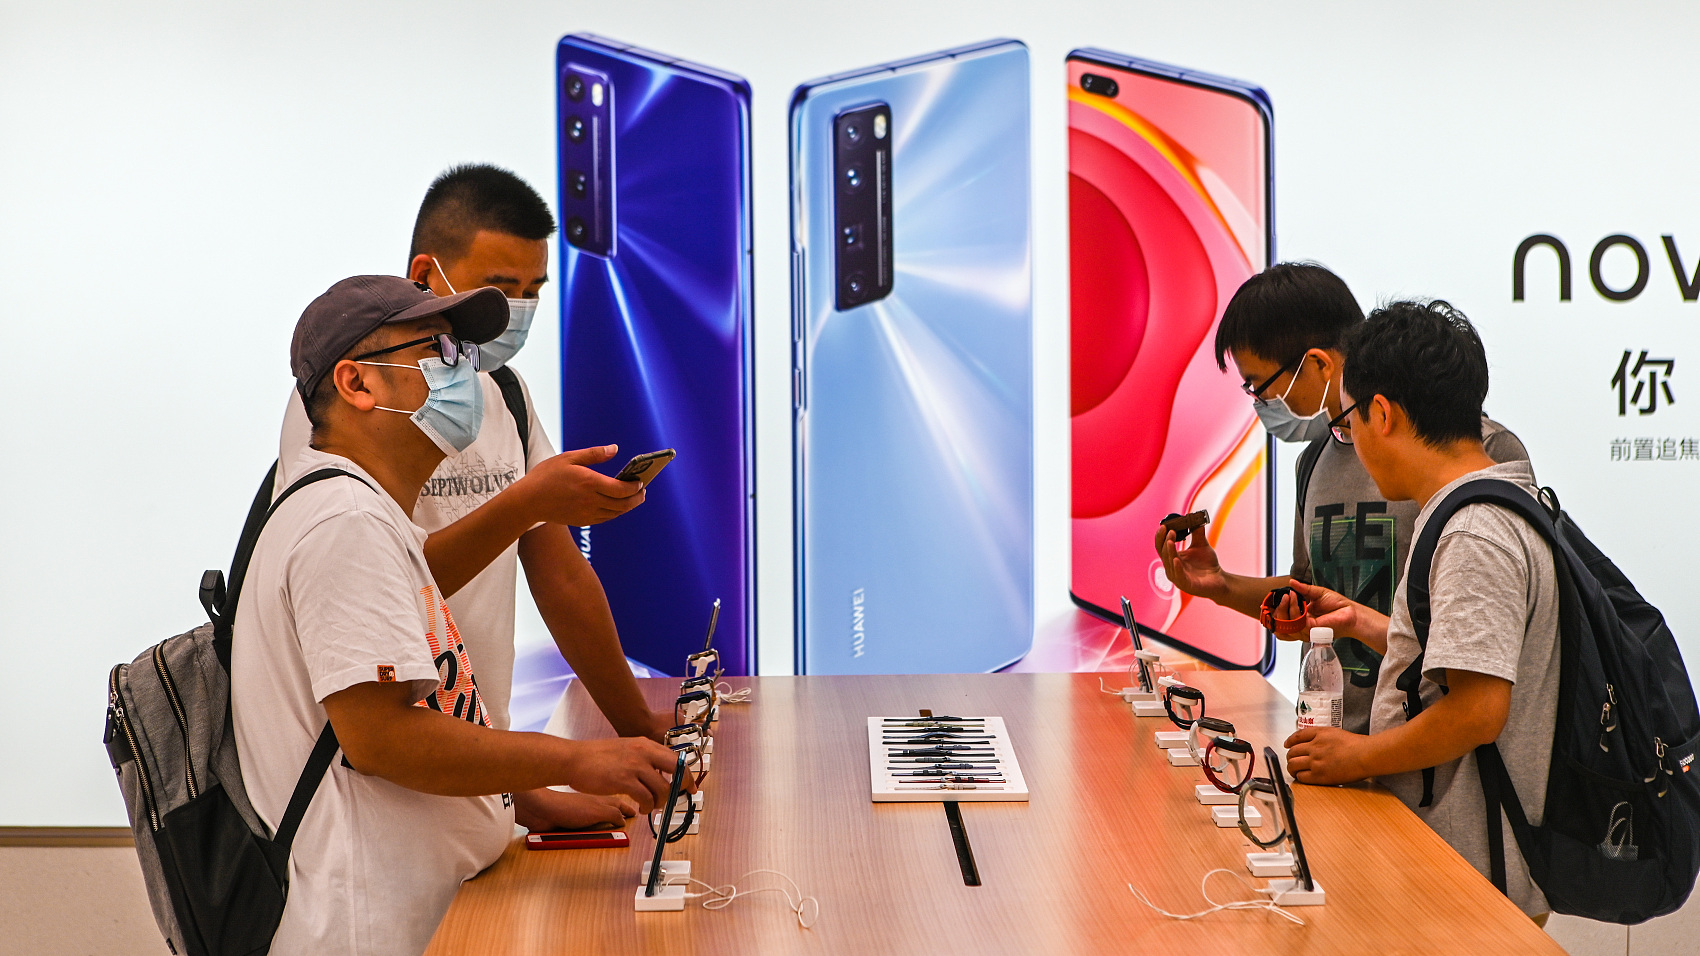 Huawei phone prices rise on fears of chip shortage